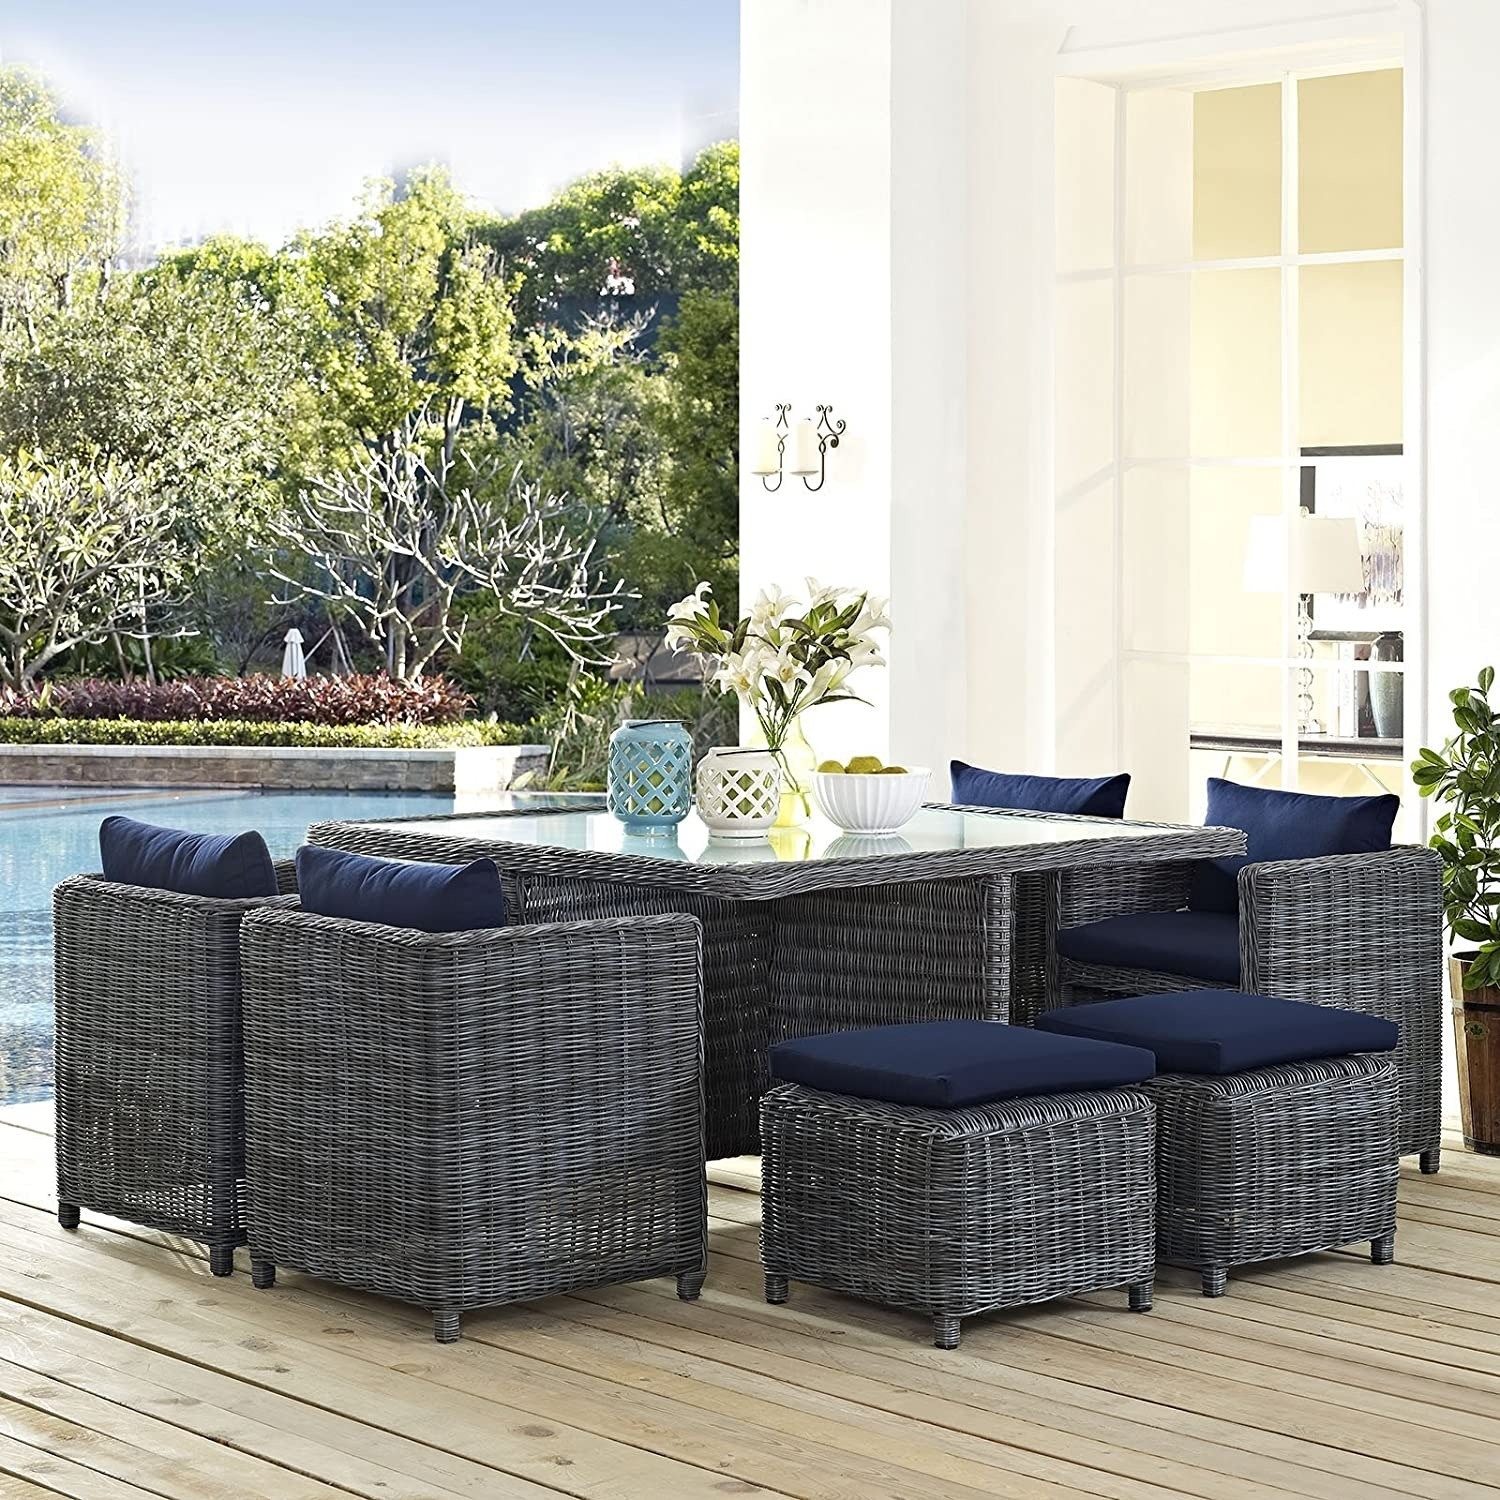 Modern 9-Piece Dining Set In Gray Navy Finish - image-4